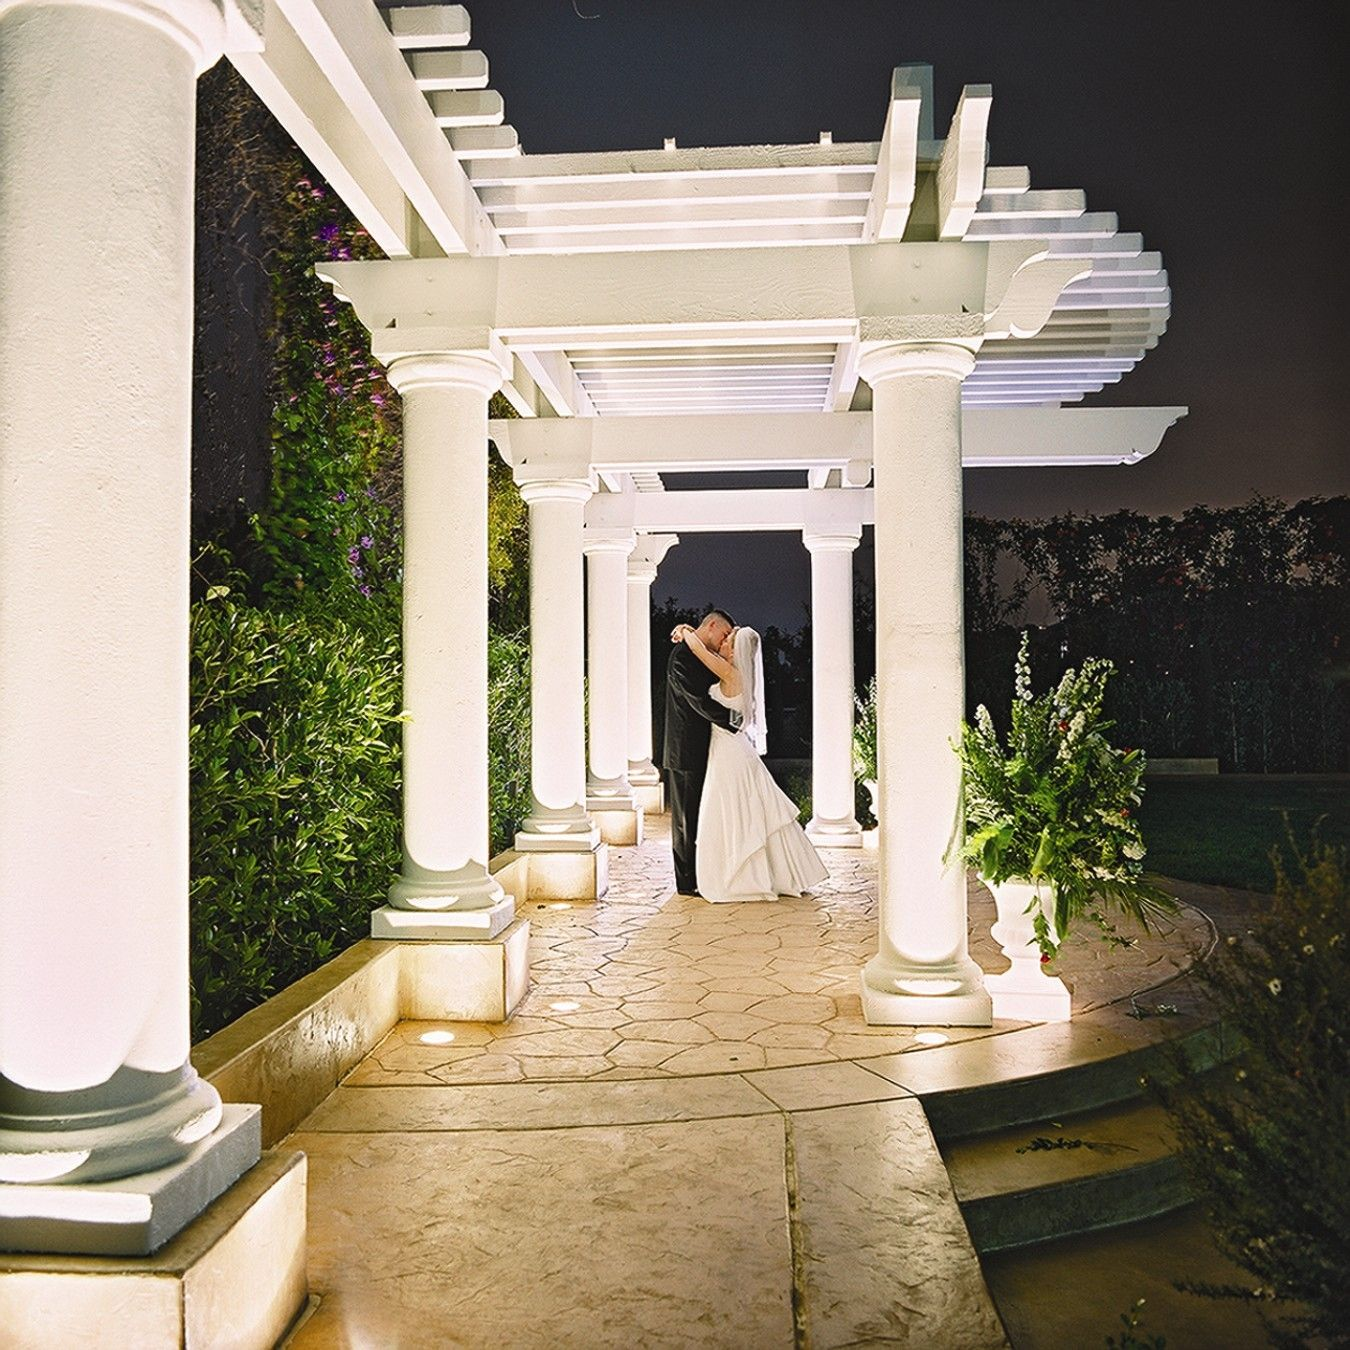 Evening Wedding Ceremony In The Beautiful Outdoor Terrace